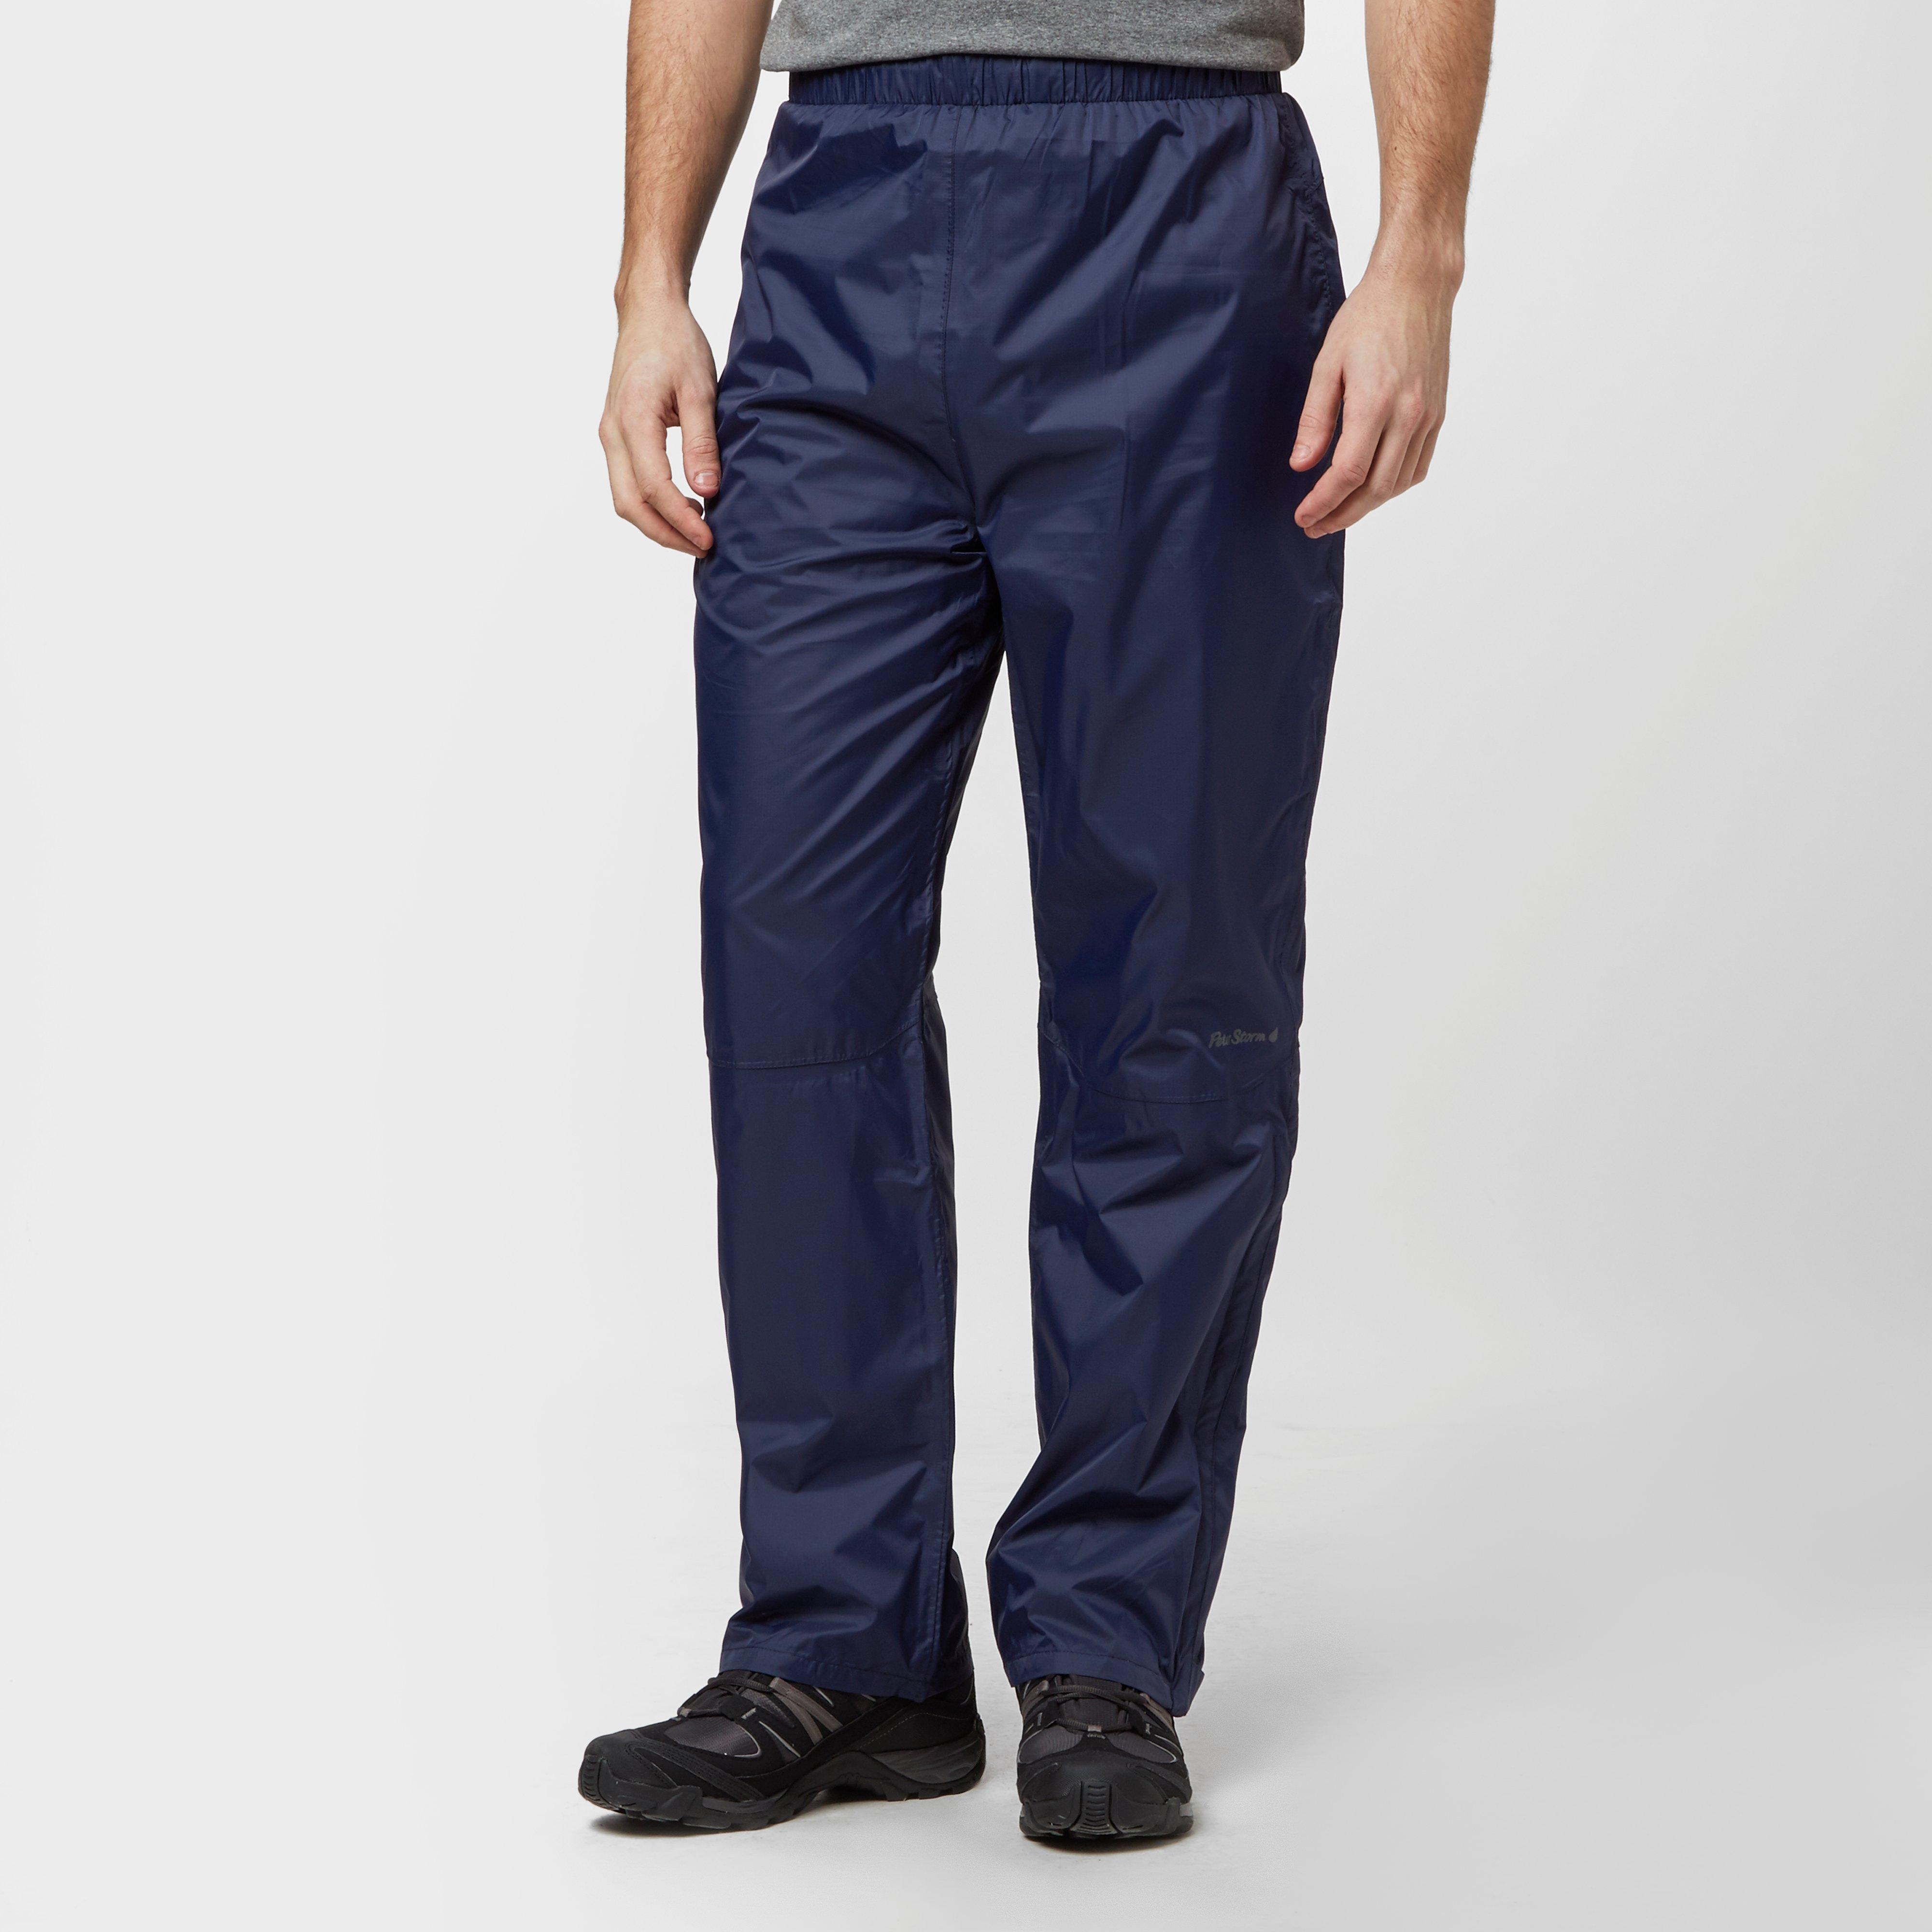 New Peter Storm Kids Storm Waterproof Overtrousers